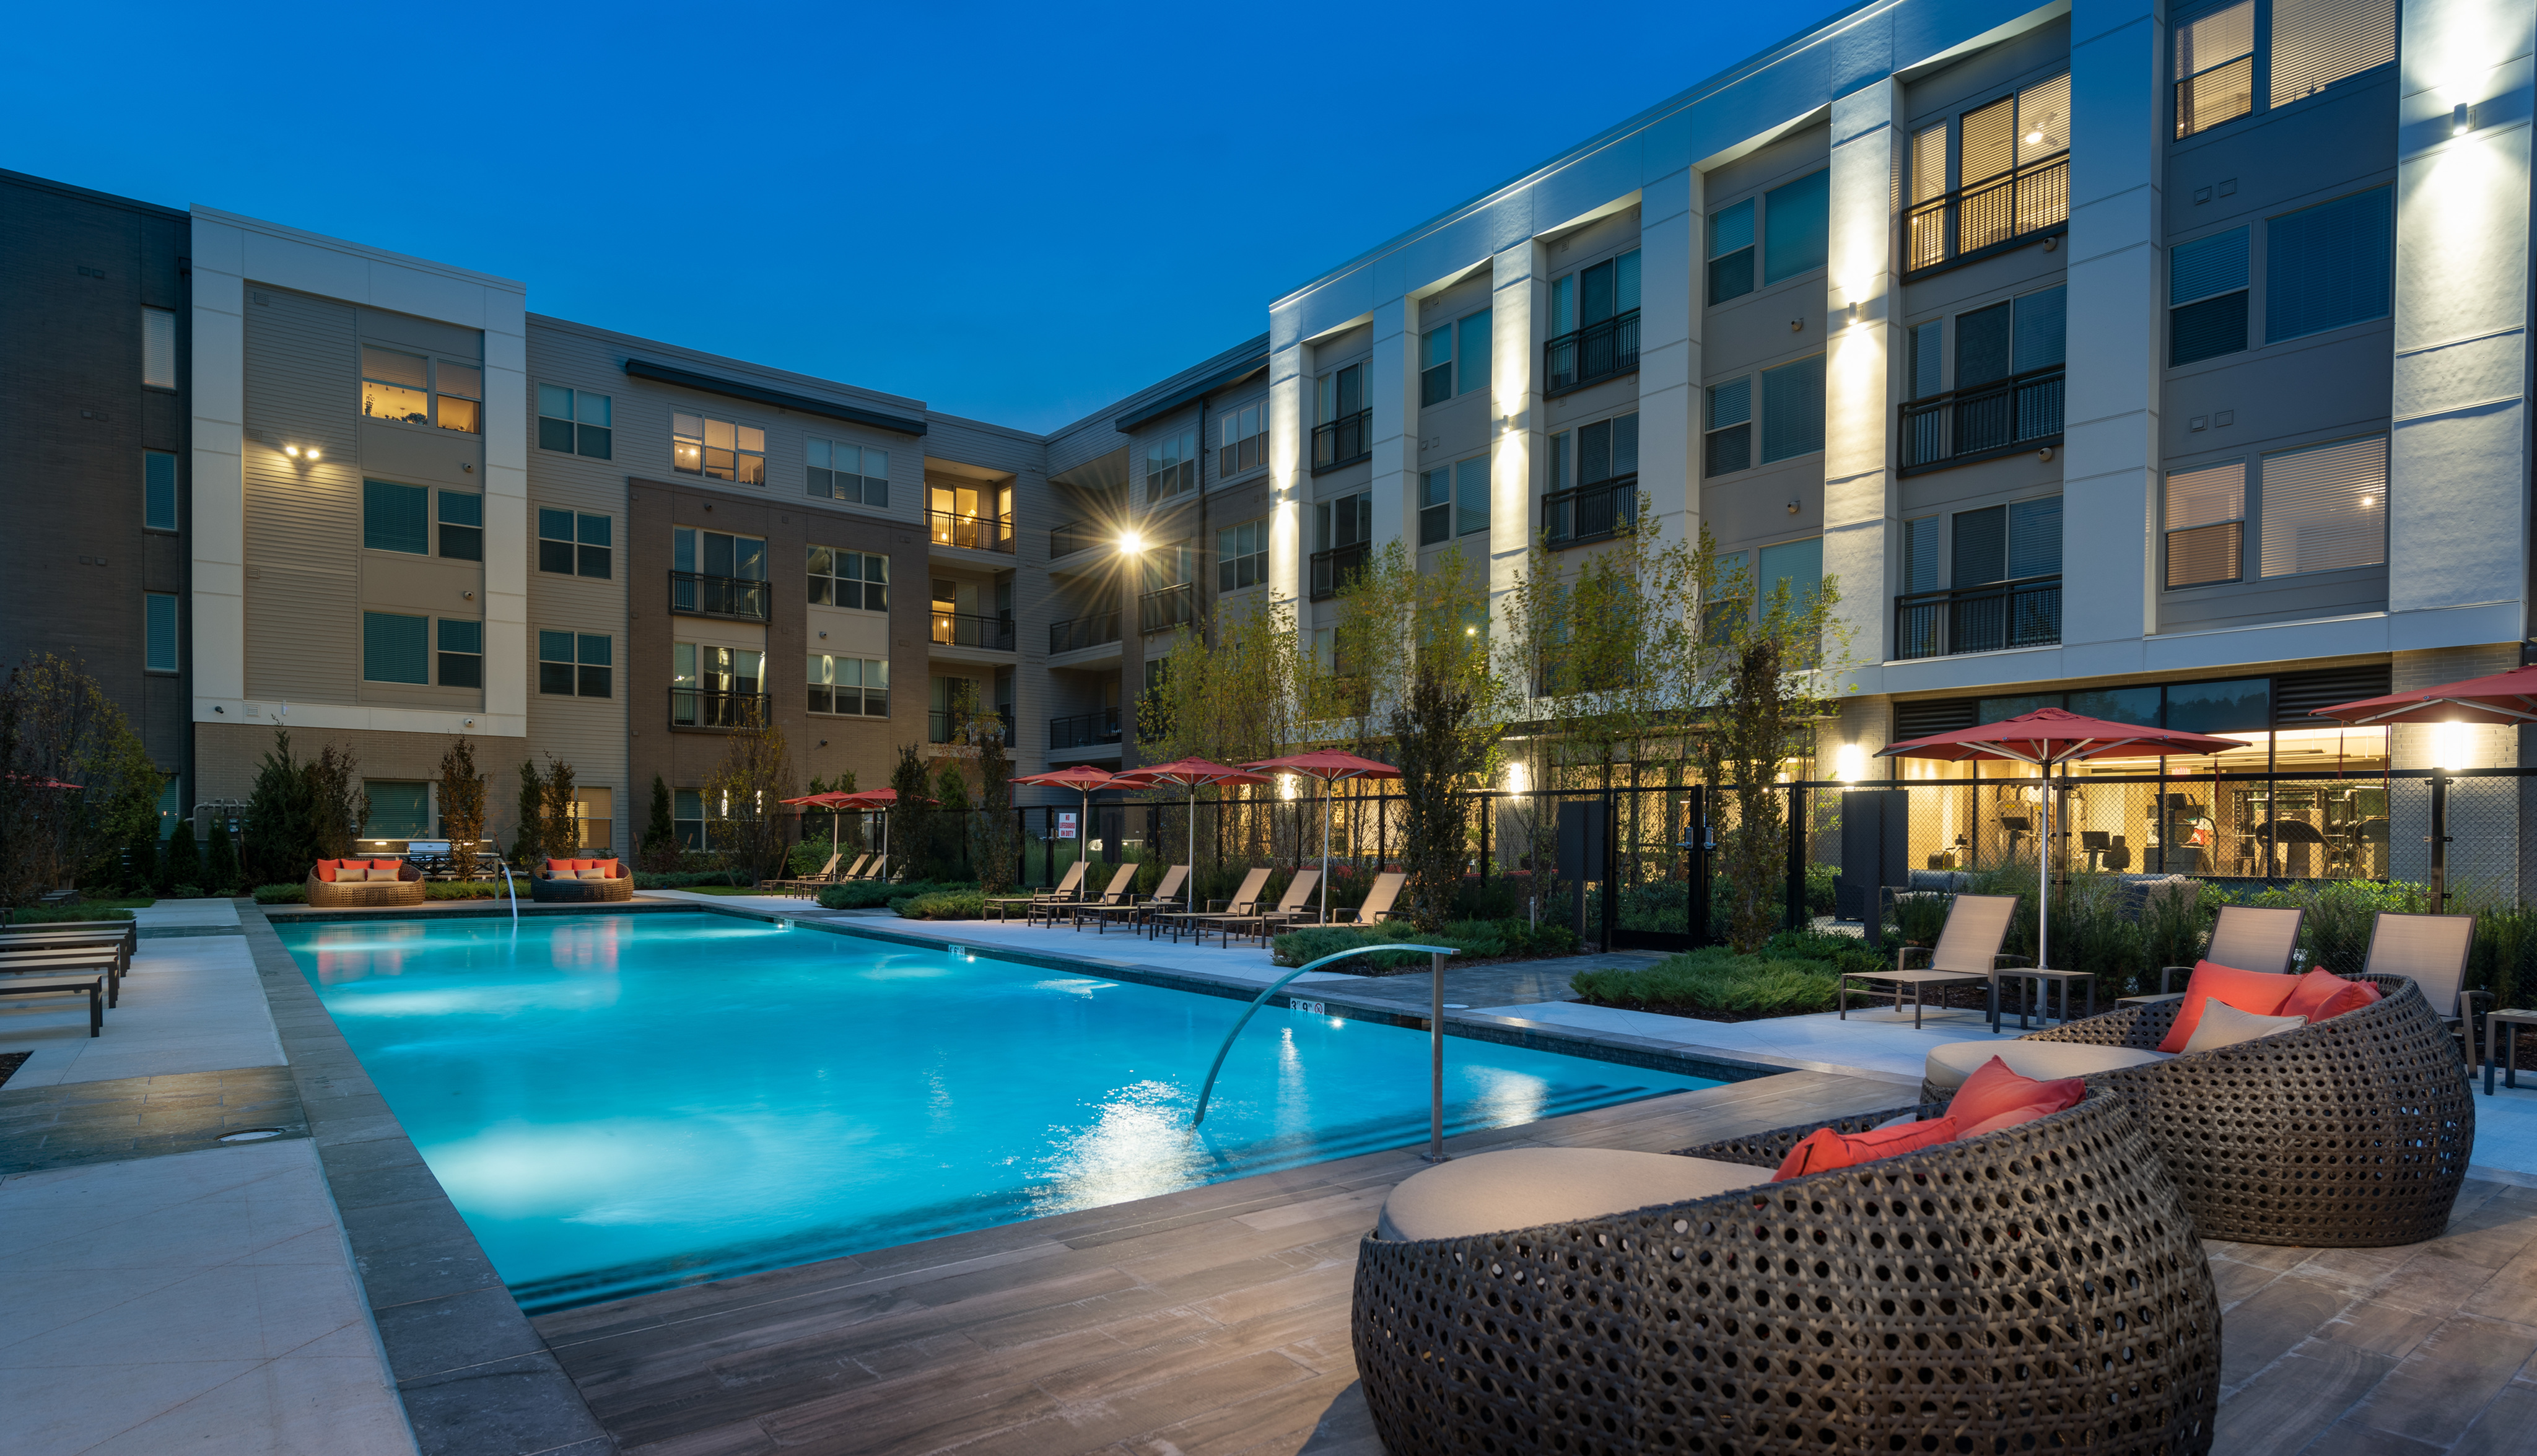 Resort-Style Pool with Pool-Side Seating and Outdoor Dining and Grilling Areas at Hanover Westford Valley